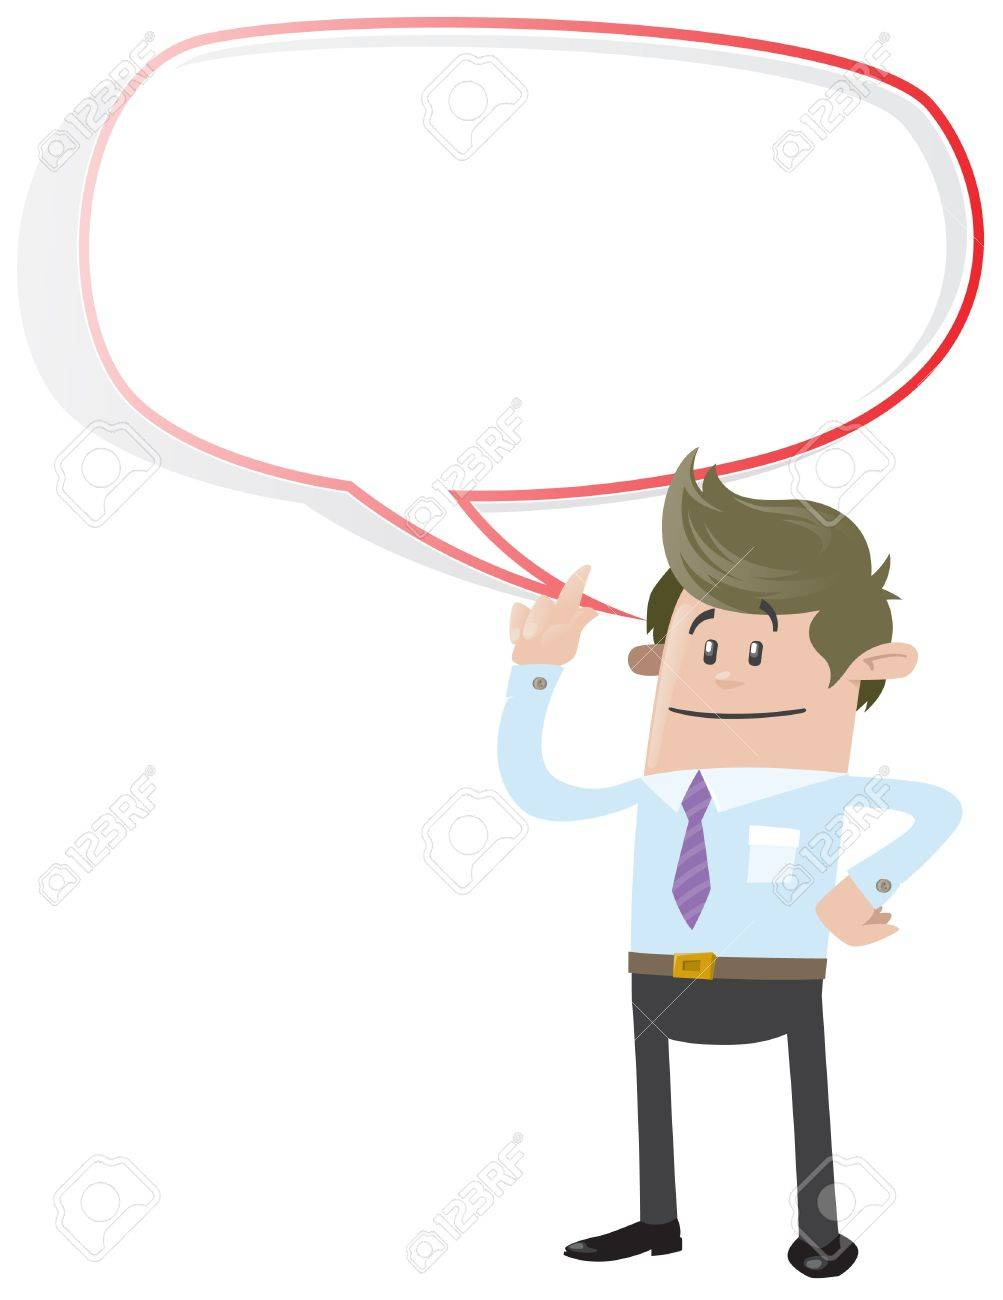 Business Buddy with Speech Bubble Stock Vector - 18818355